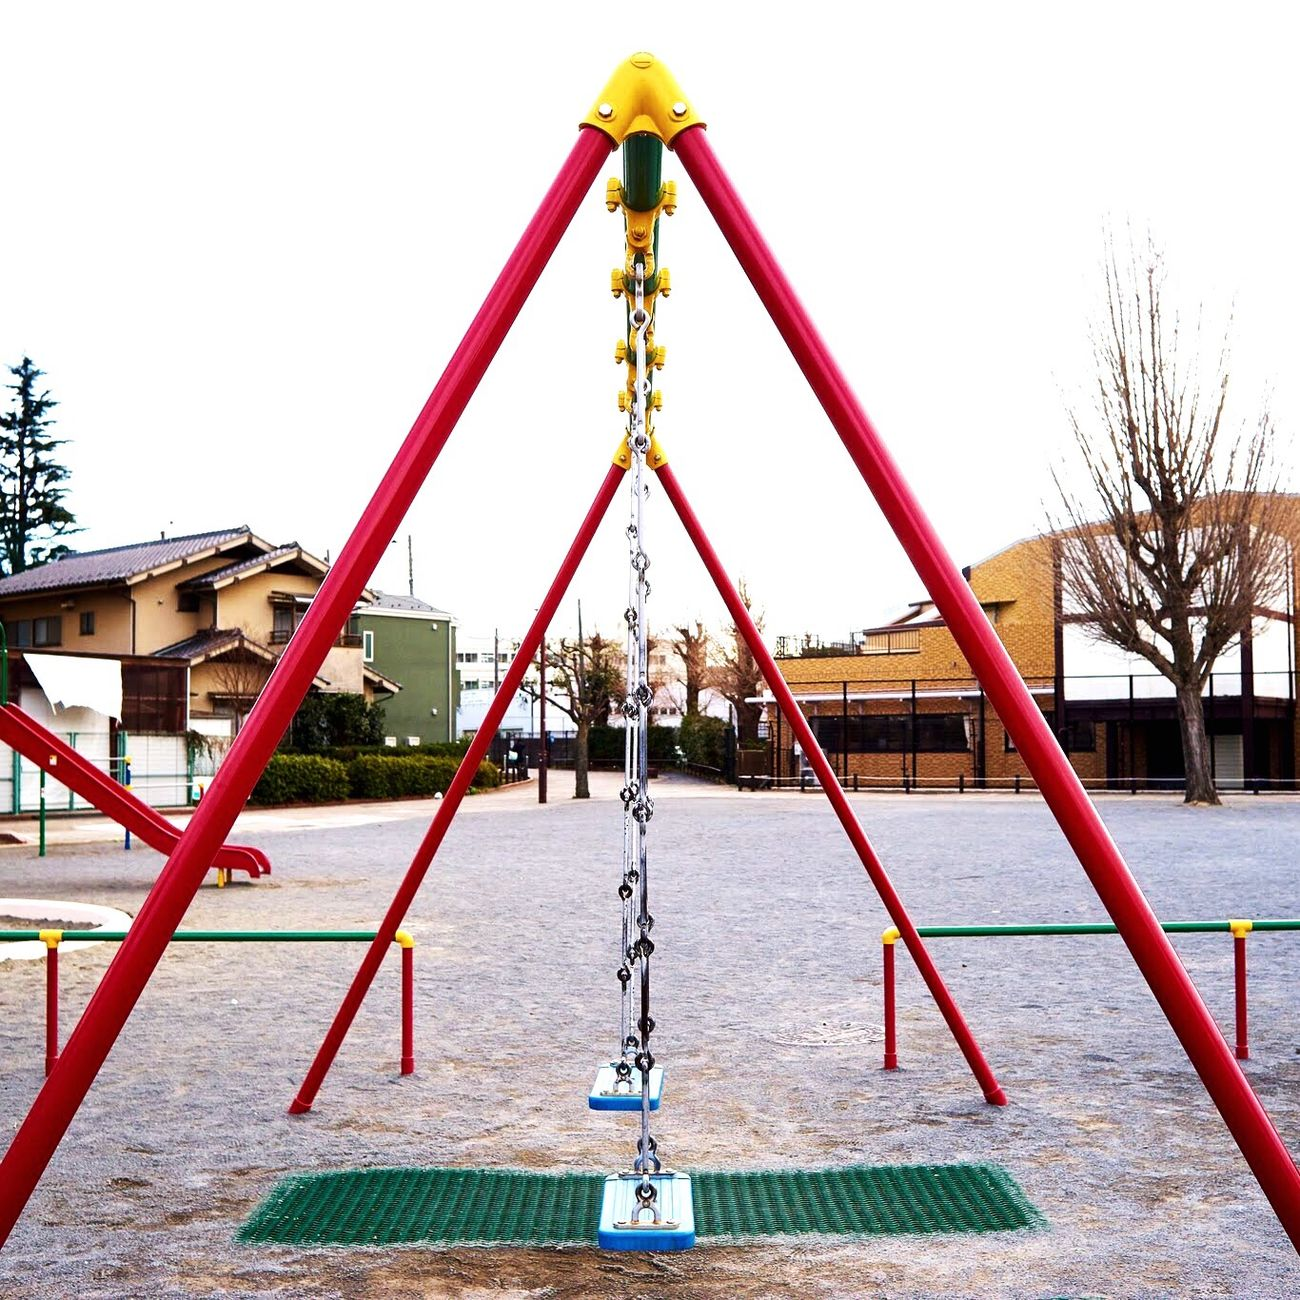 Playground Outdoors Childhood Day Swing Sky People Branco Color Playing